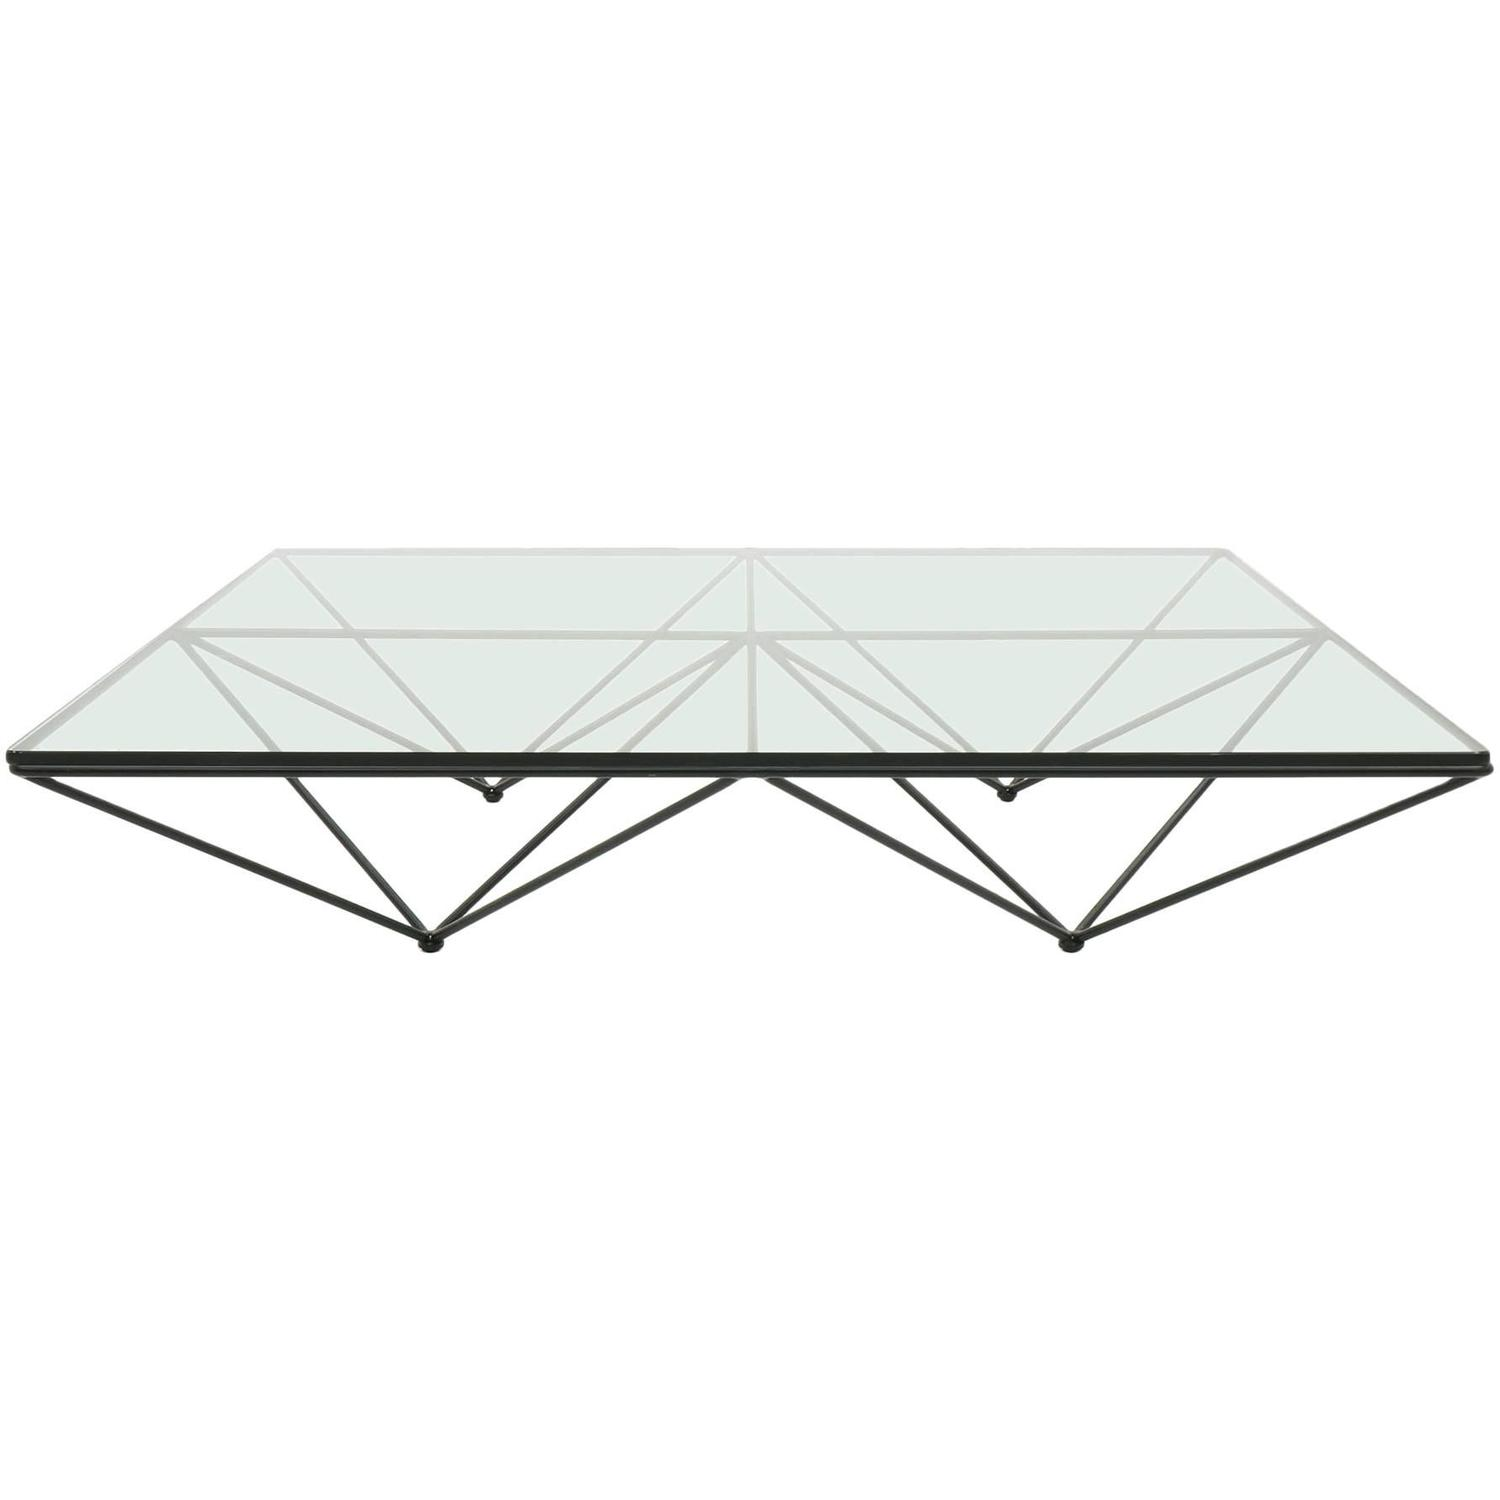 Original Alanda Square Glass Coffee Table by Paolo Piva for B&B